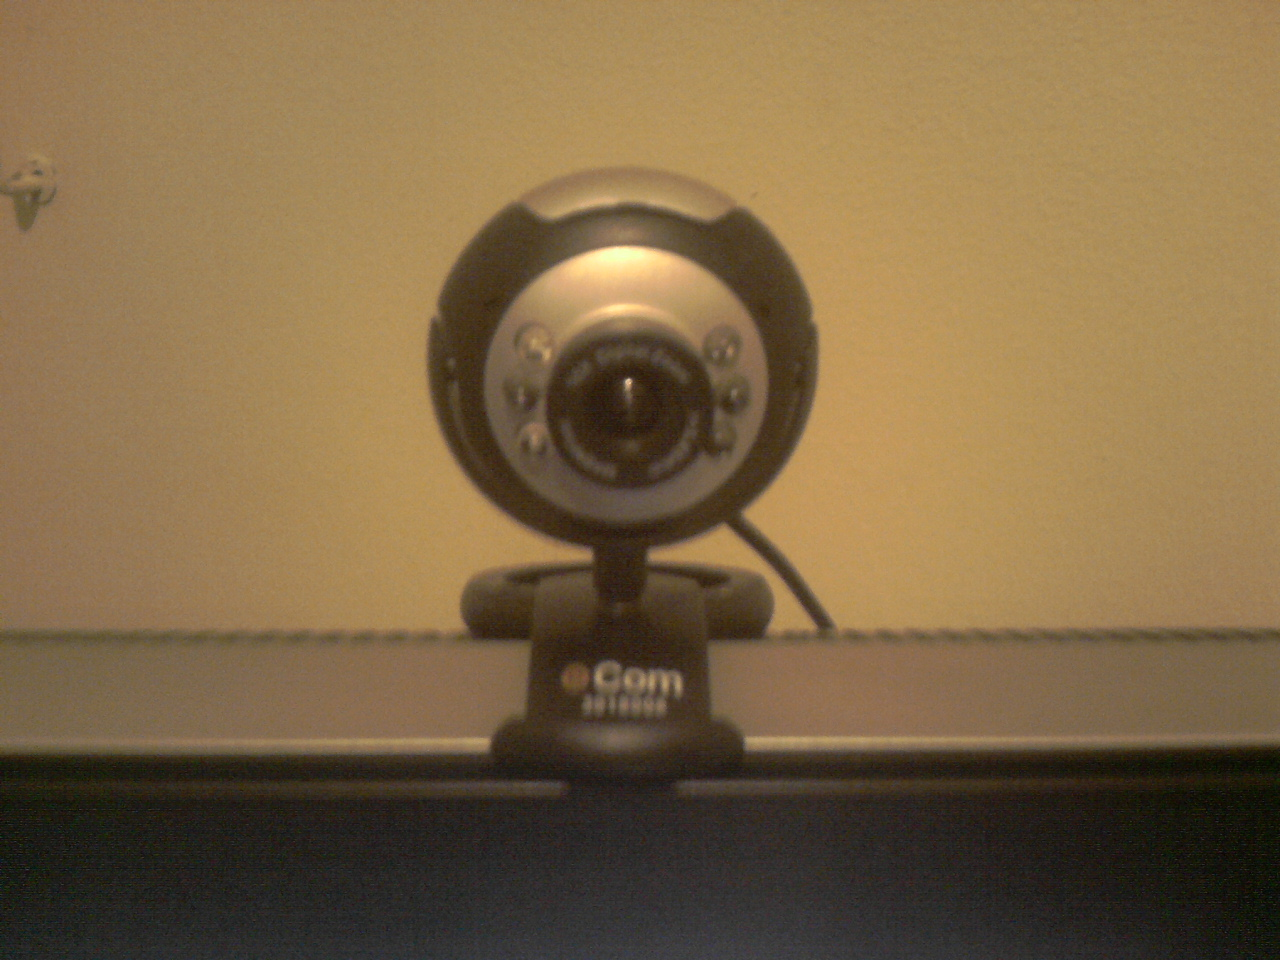 Buy OEM USB Camera with 10X Optical Zoom - See3CAM 30Z10X